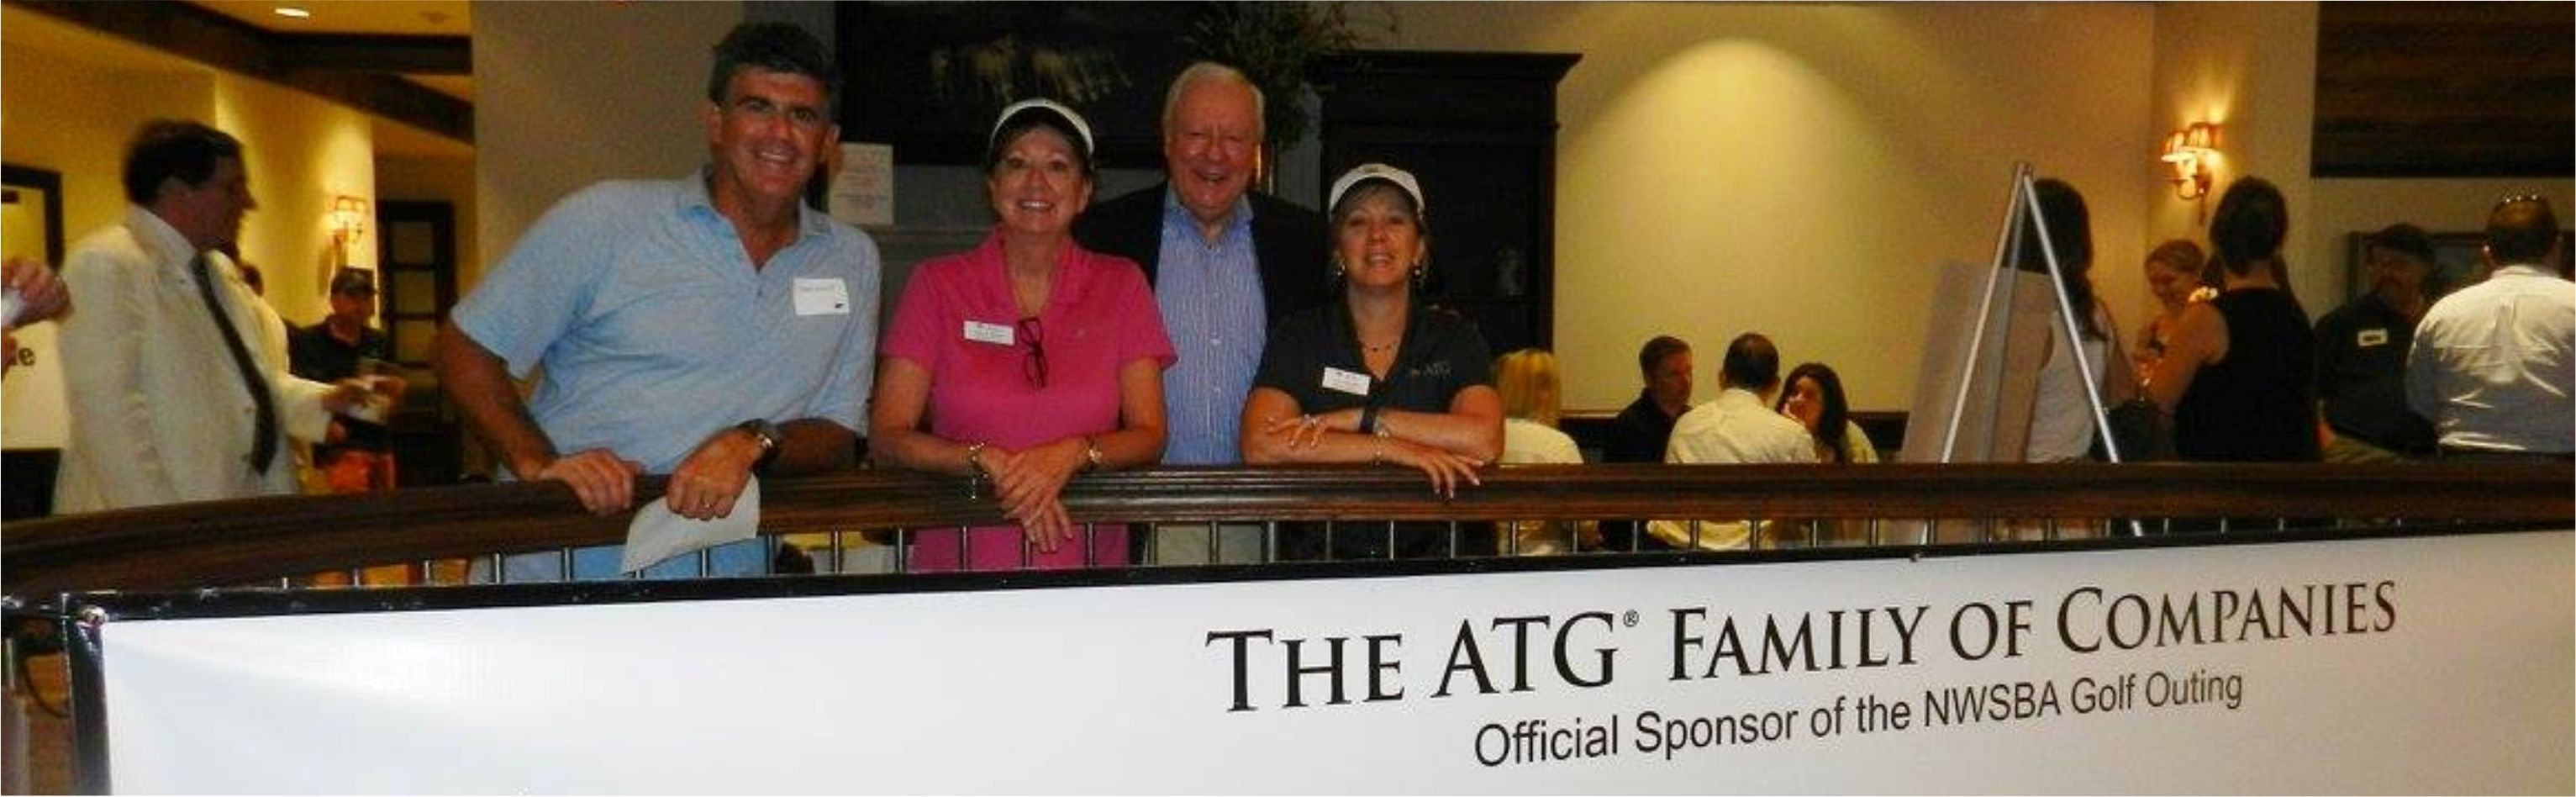 ATG Co-Sponsors NWSBA Golf Outing